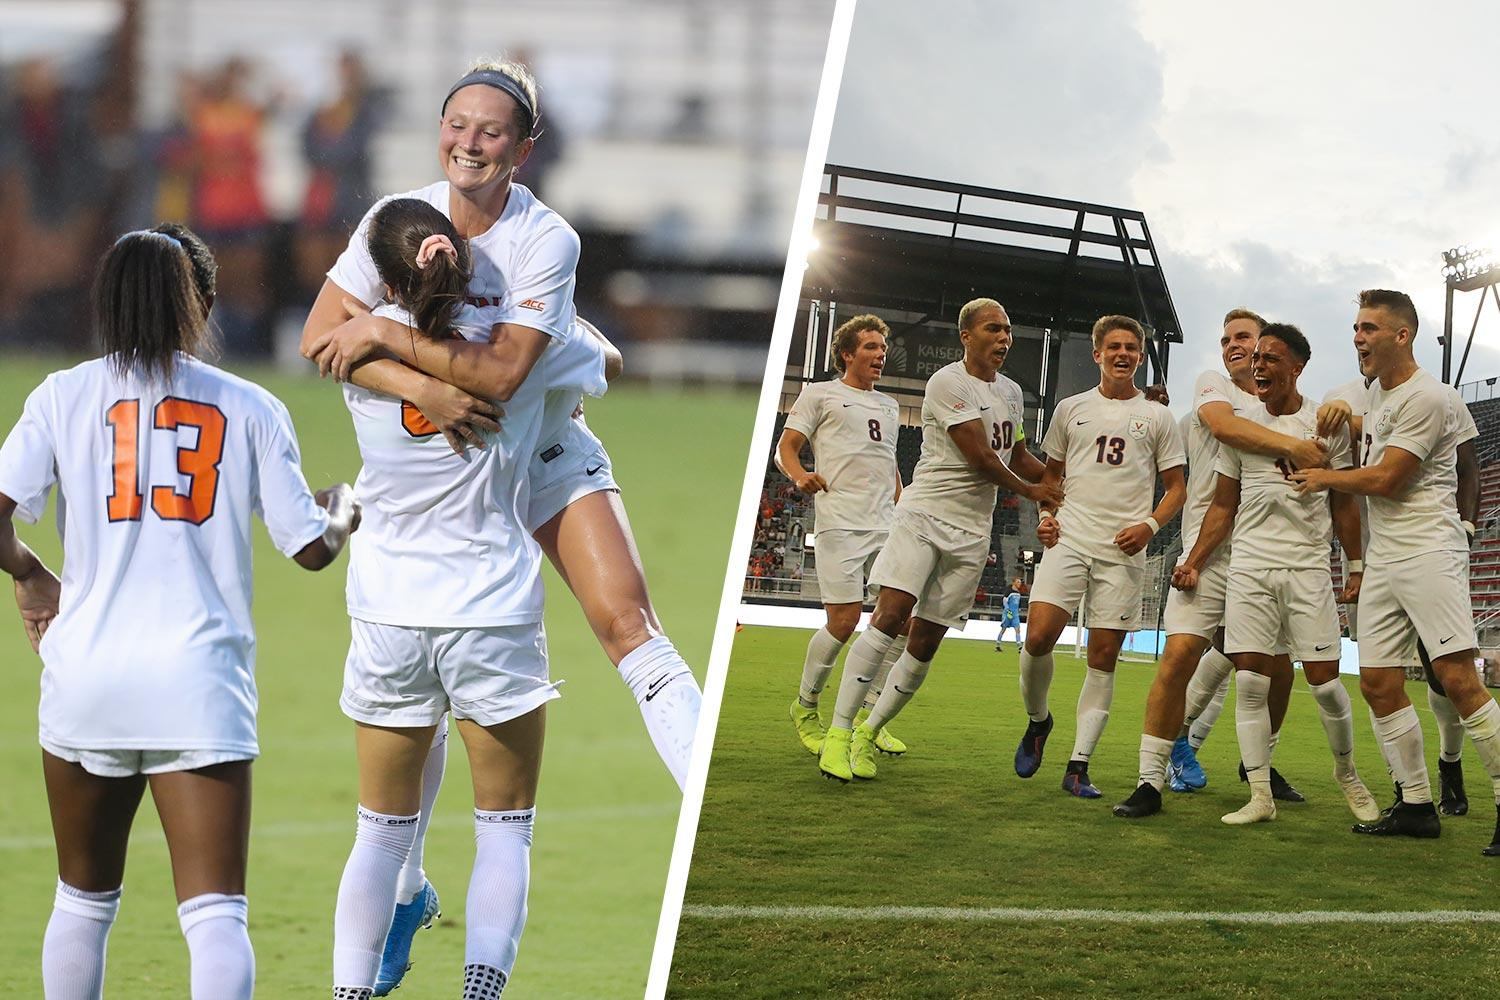 The Cavaliers men's and women's soccer teams are both having great seasons.